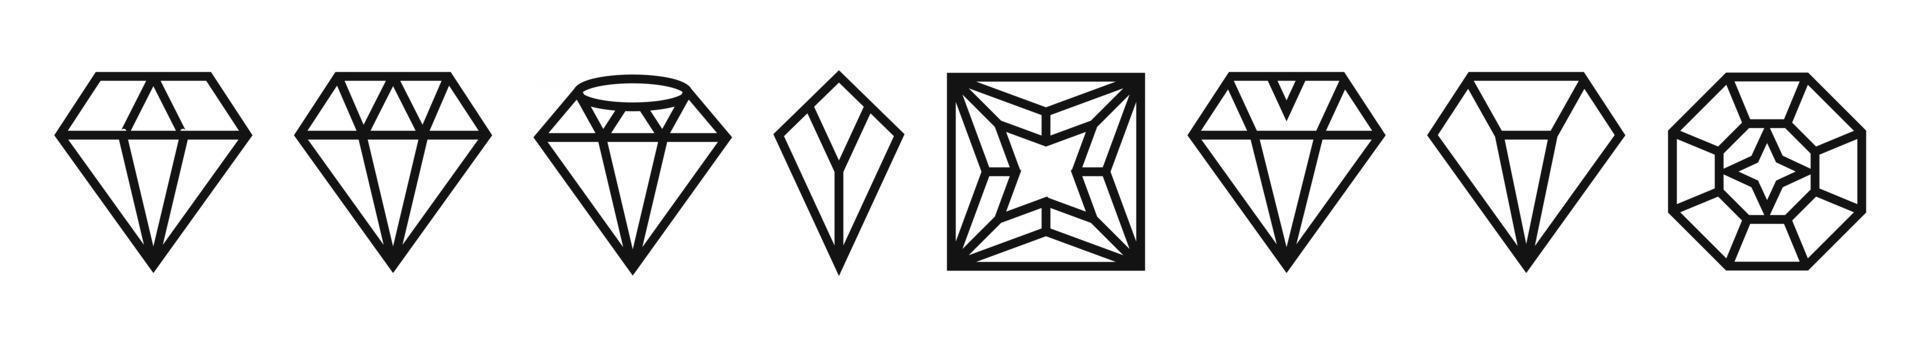 Set of a diamond line art icon for apps or website vector